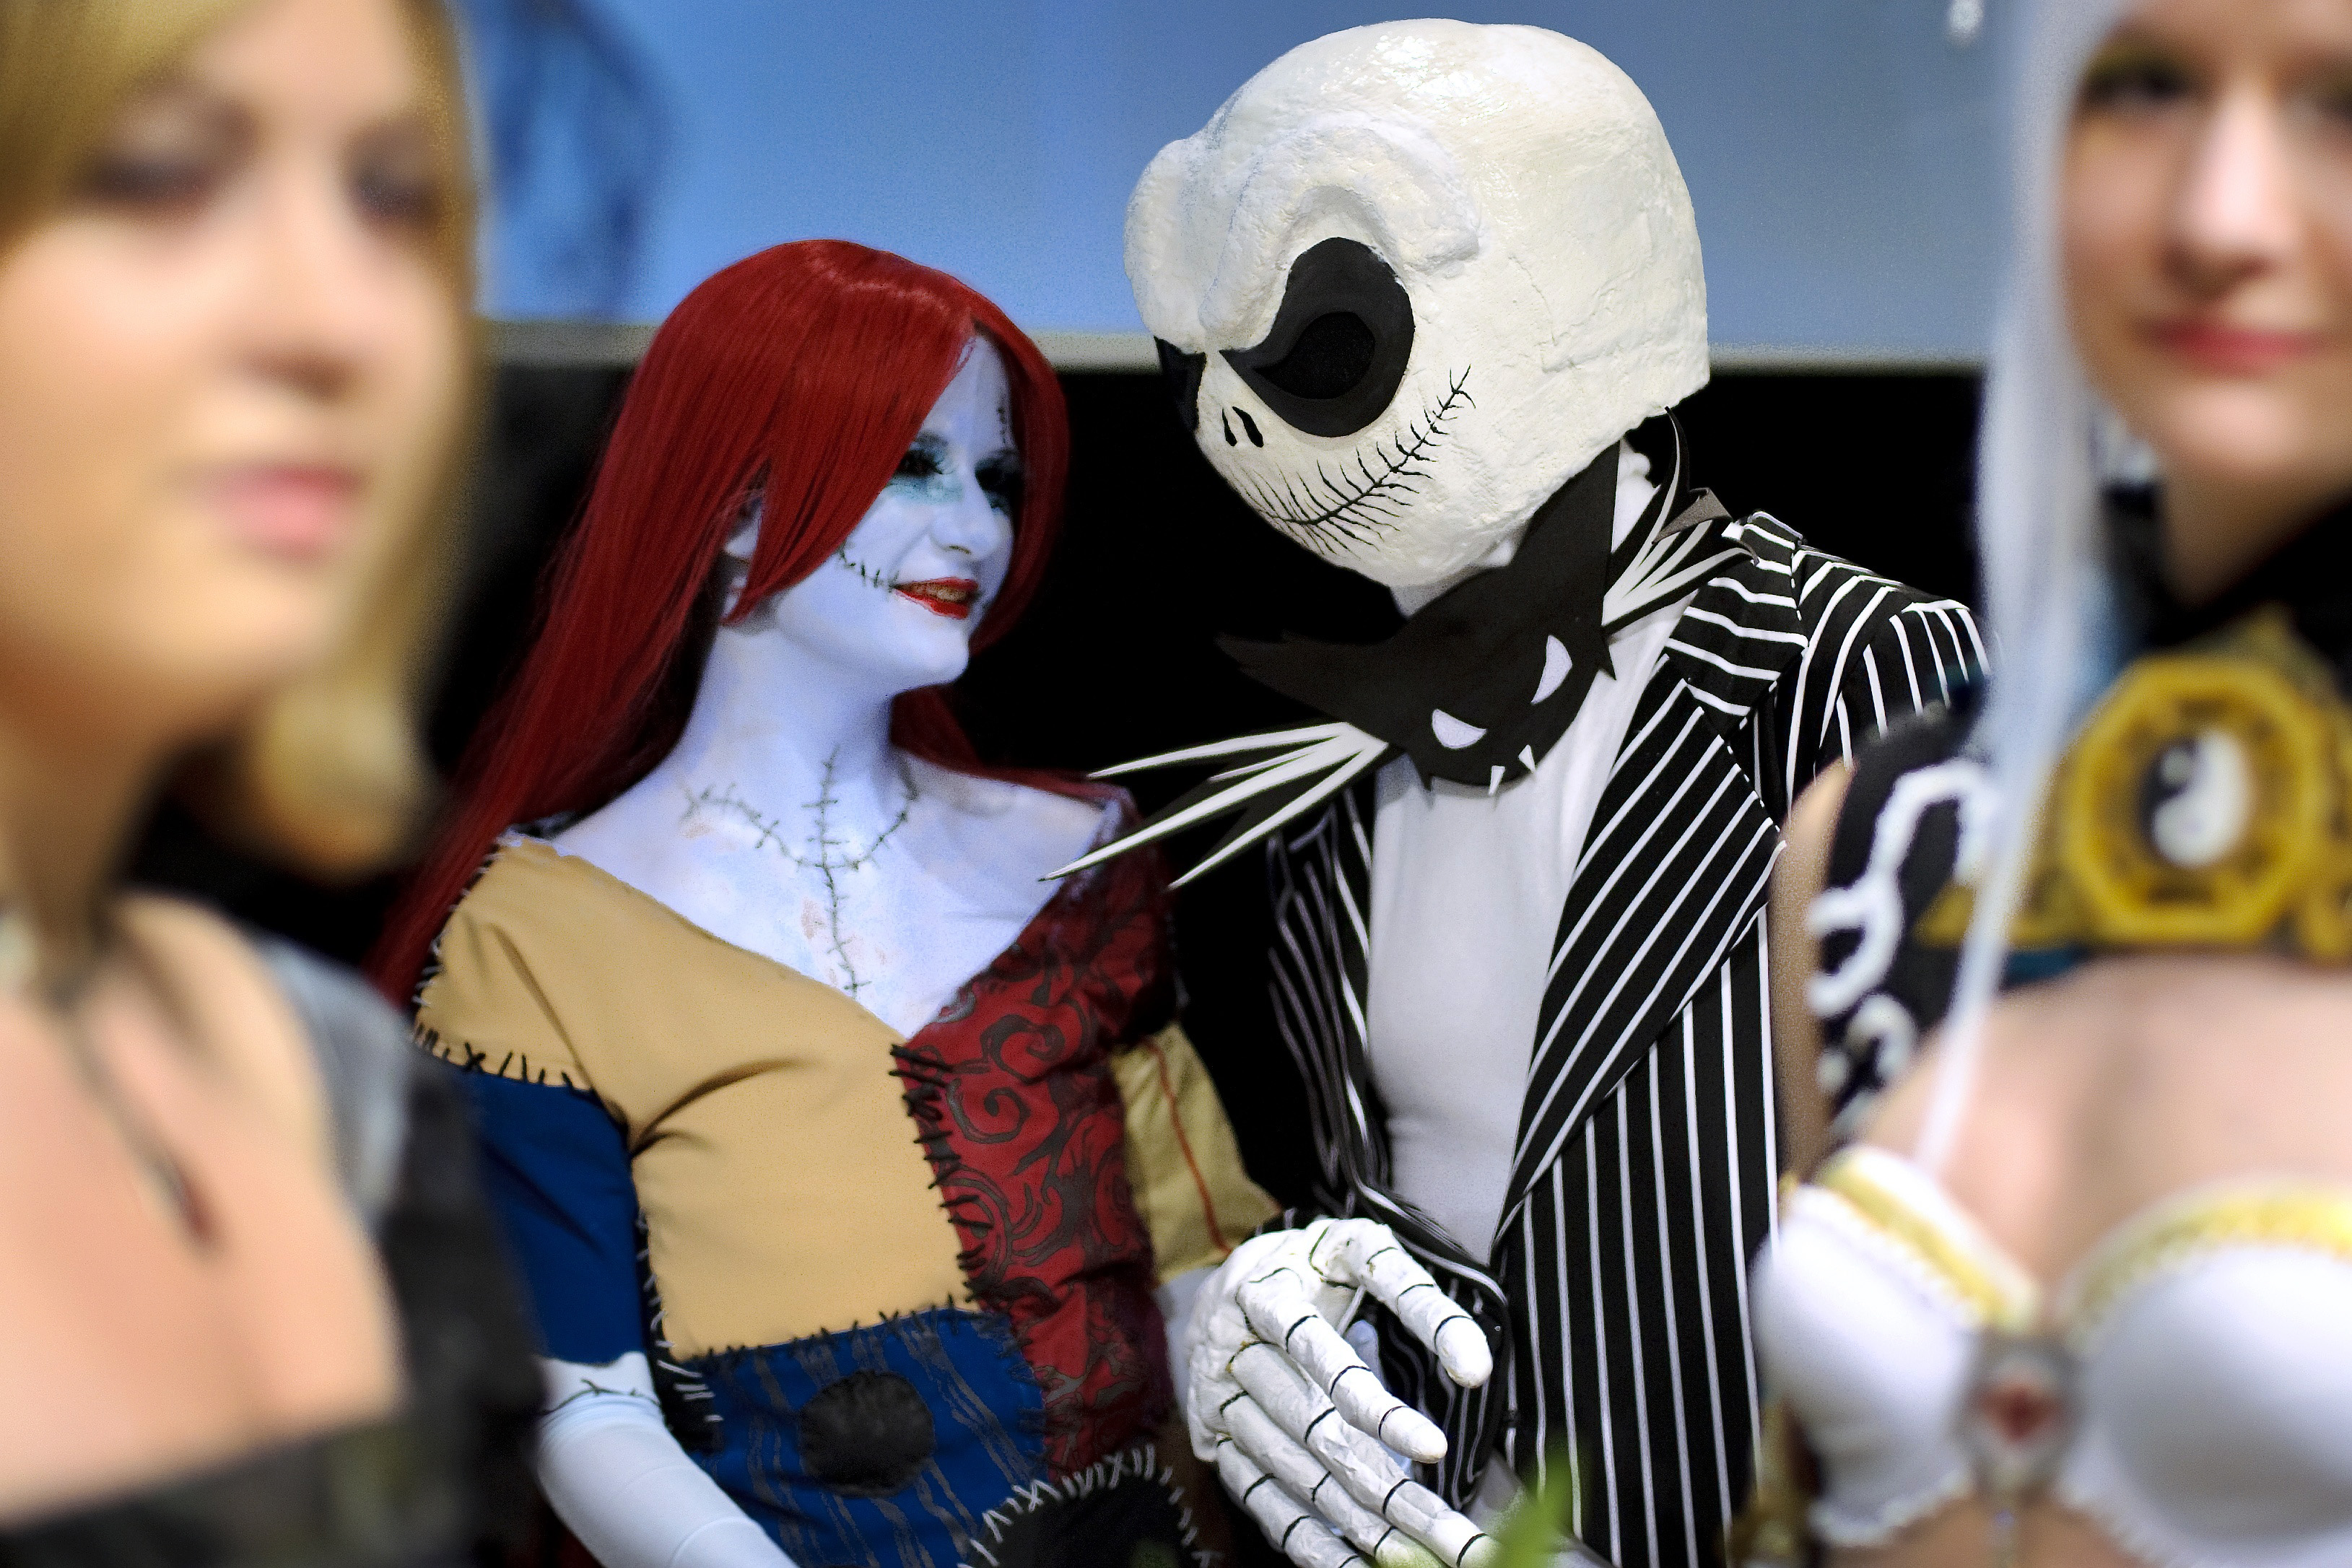 jack & sally halloween costumes are easier than ever with this hot